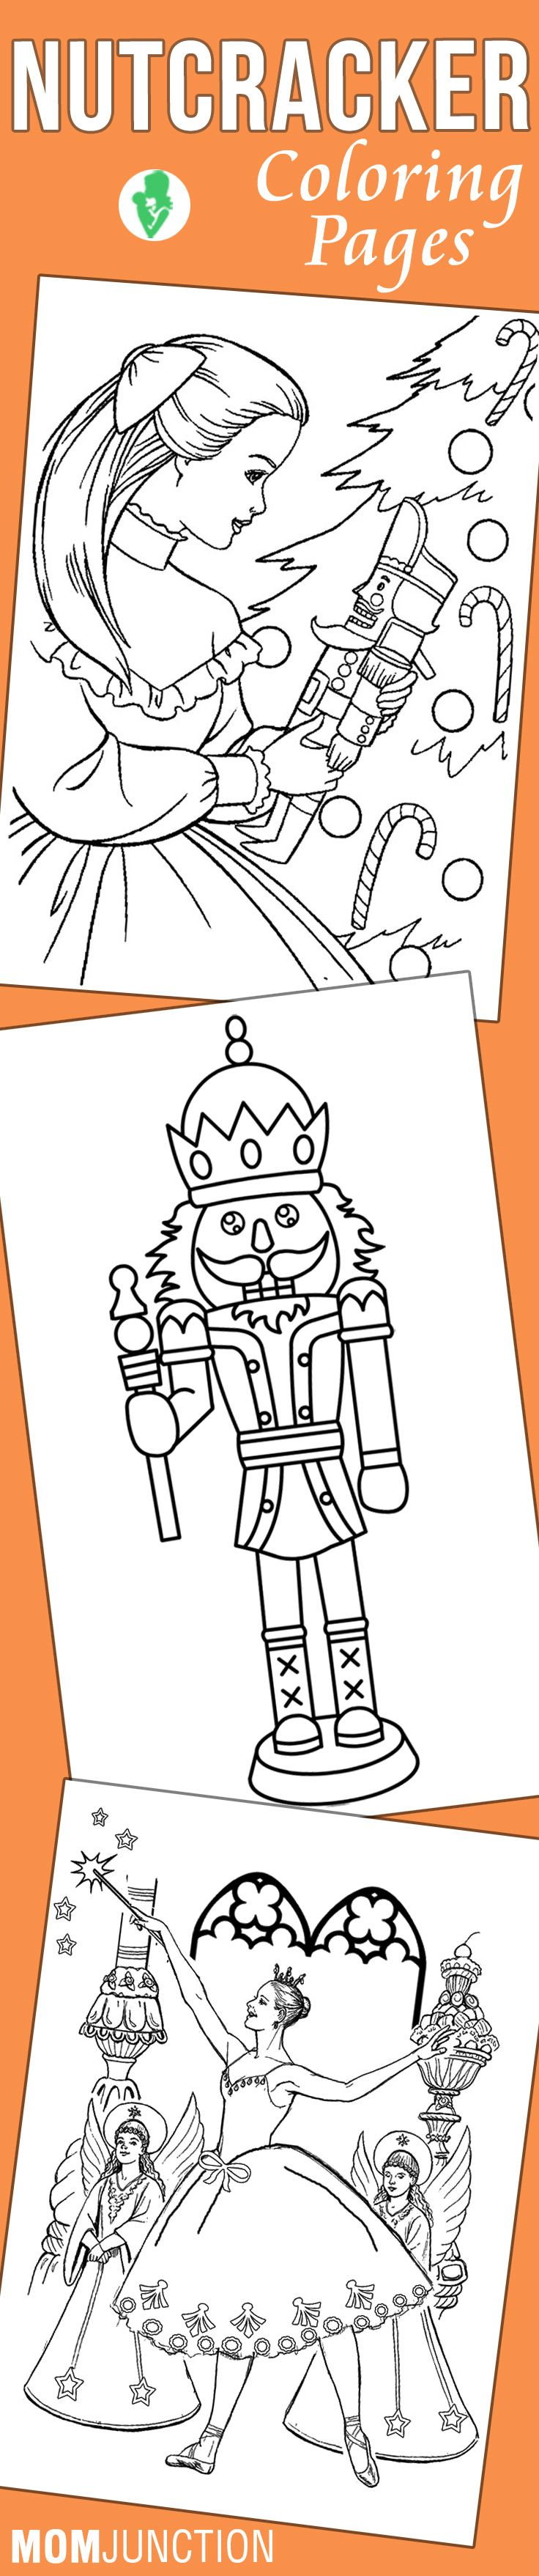 nutcracker suite coloring pages free - photo#24